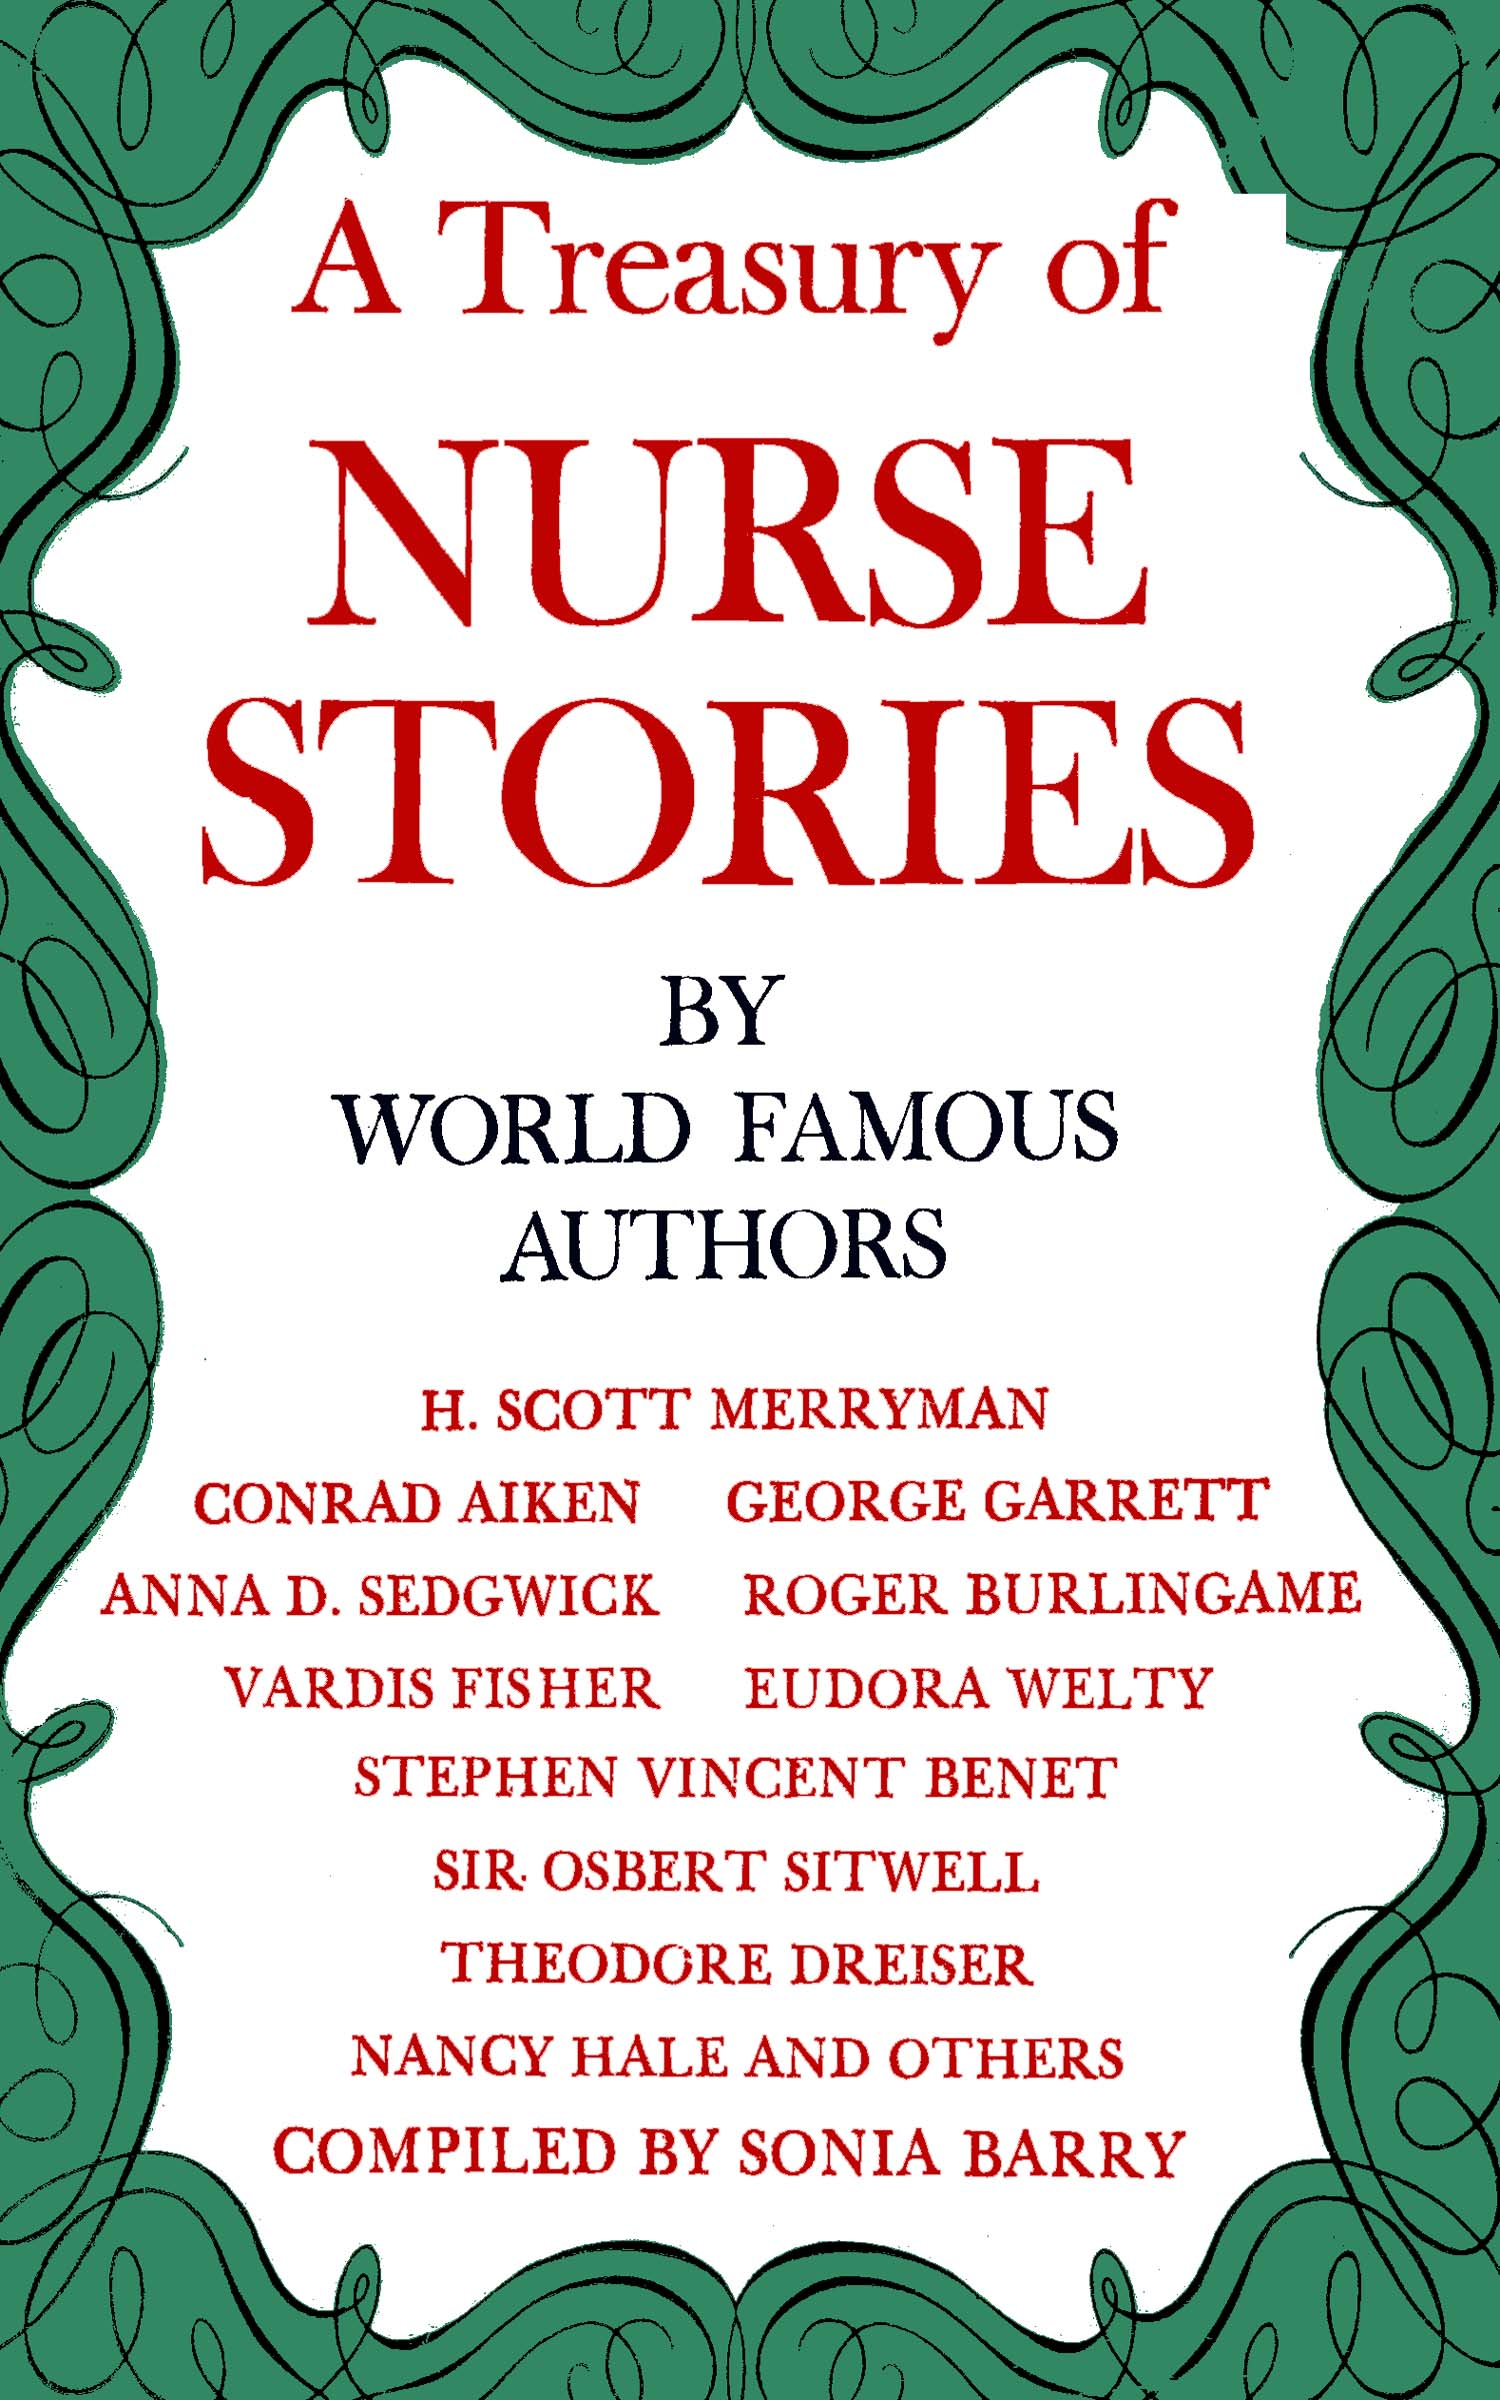 A Treasury of Nurse Stories